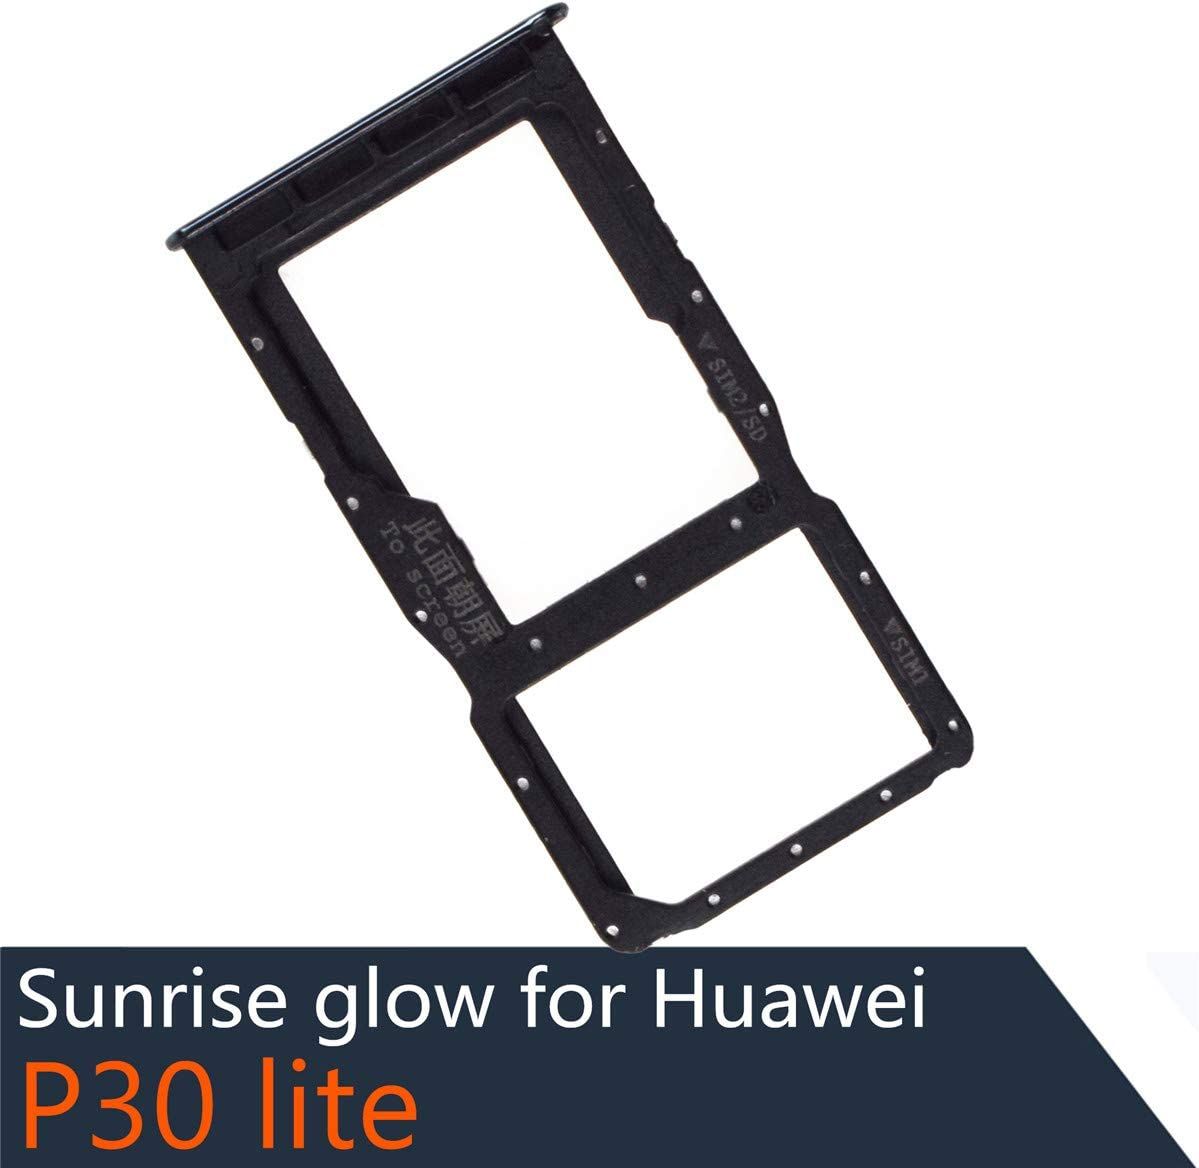 Dual SIM Card Tray + Micro SD Card Slot Compatible with Huawei P30 lite Bright Black